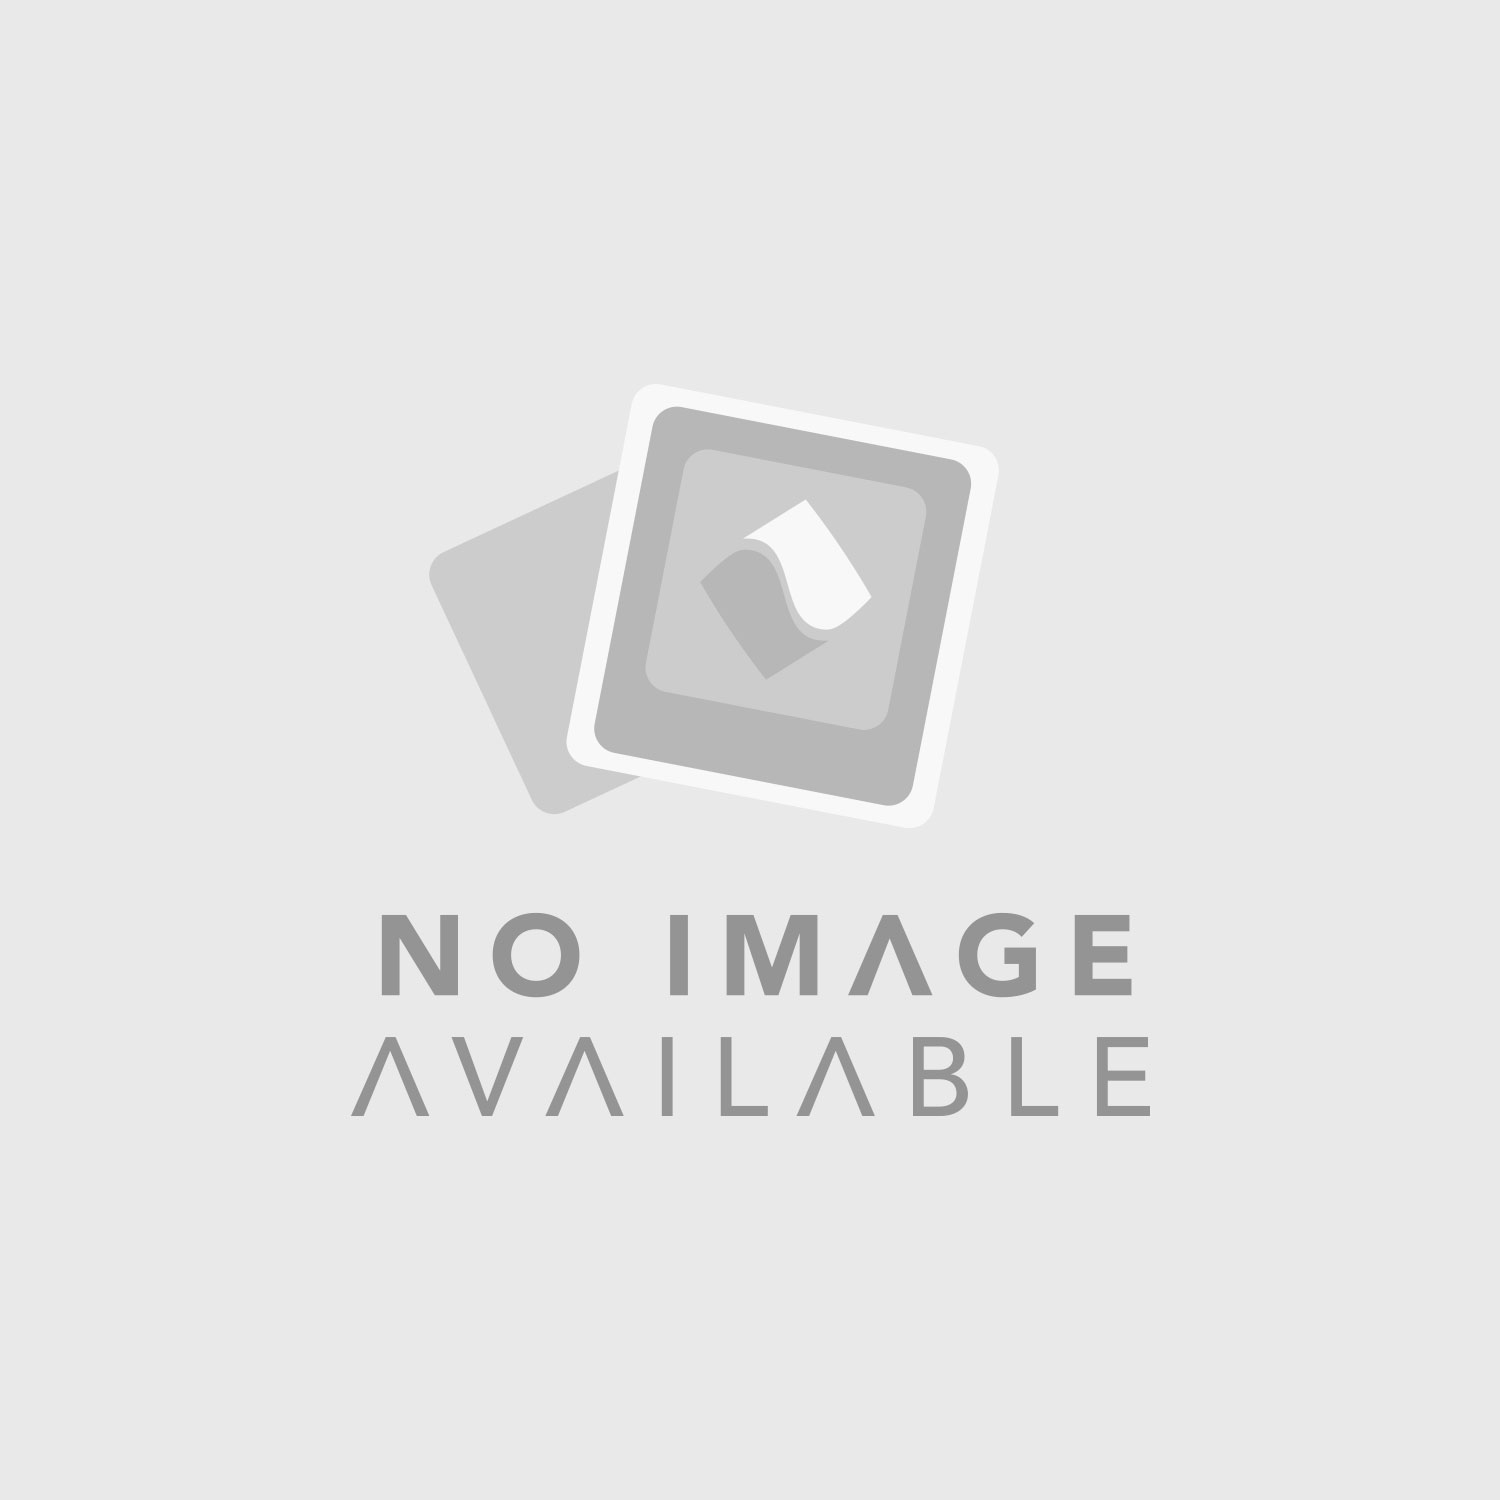 Focusrite RedNet 1 Dante Equipped 8-Channel Audio Interface